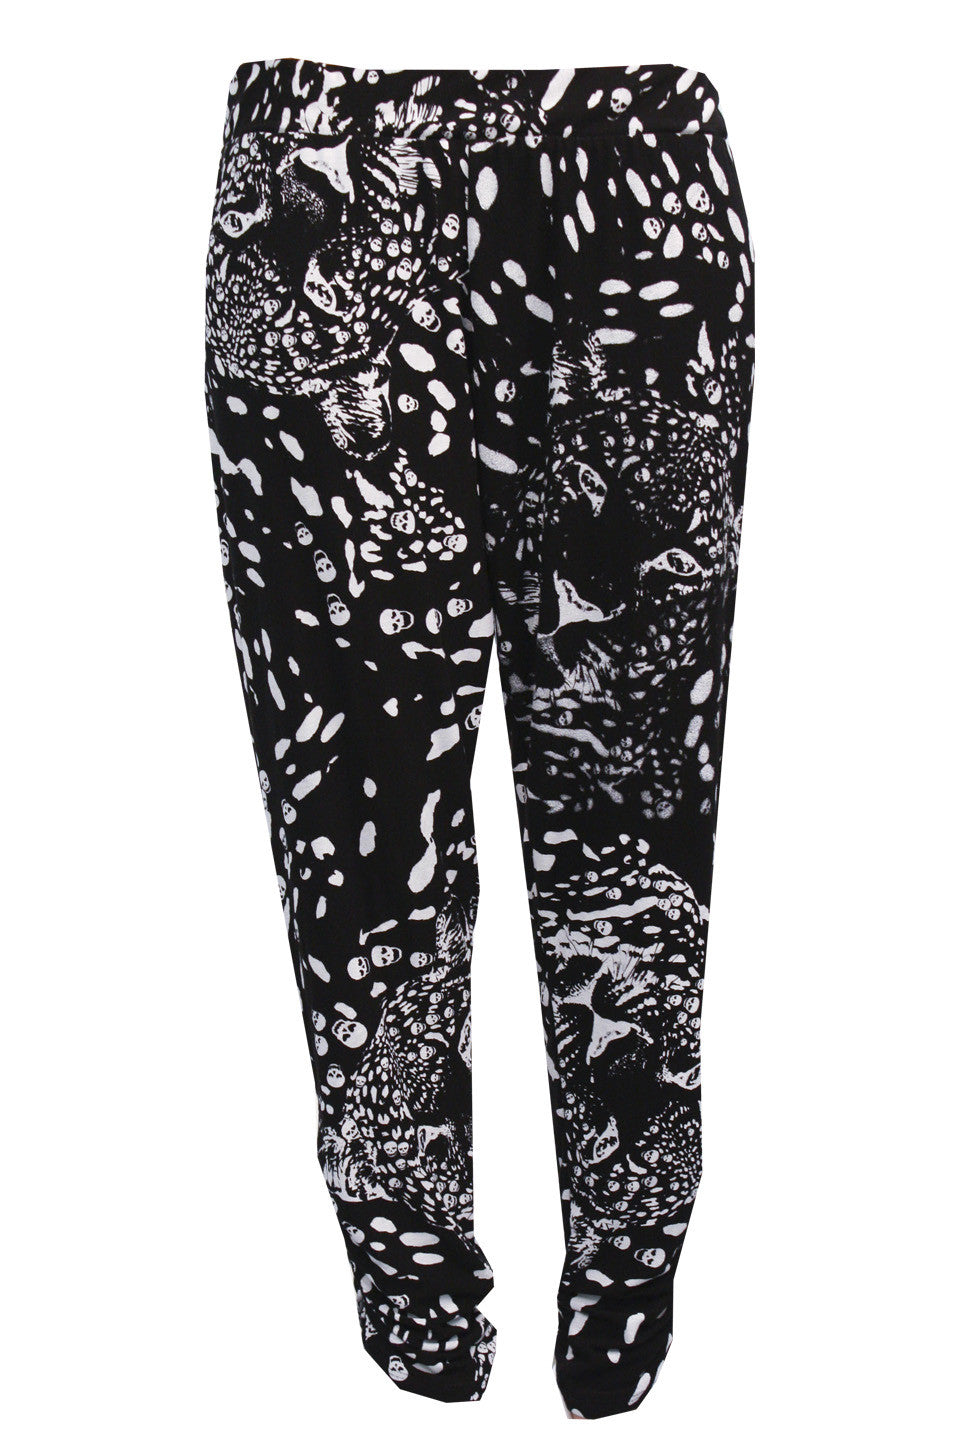 Mimi Leopard Print Pant with Sheering FINAL SALE - Lauren Moshi - 2